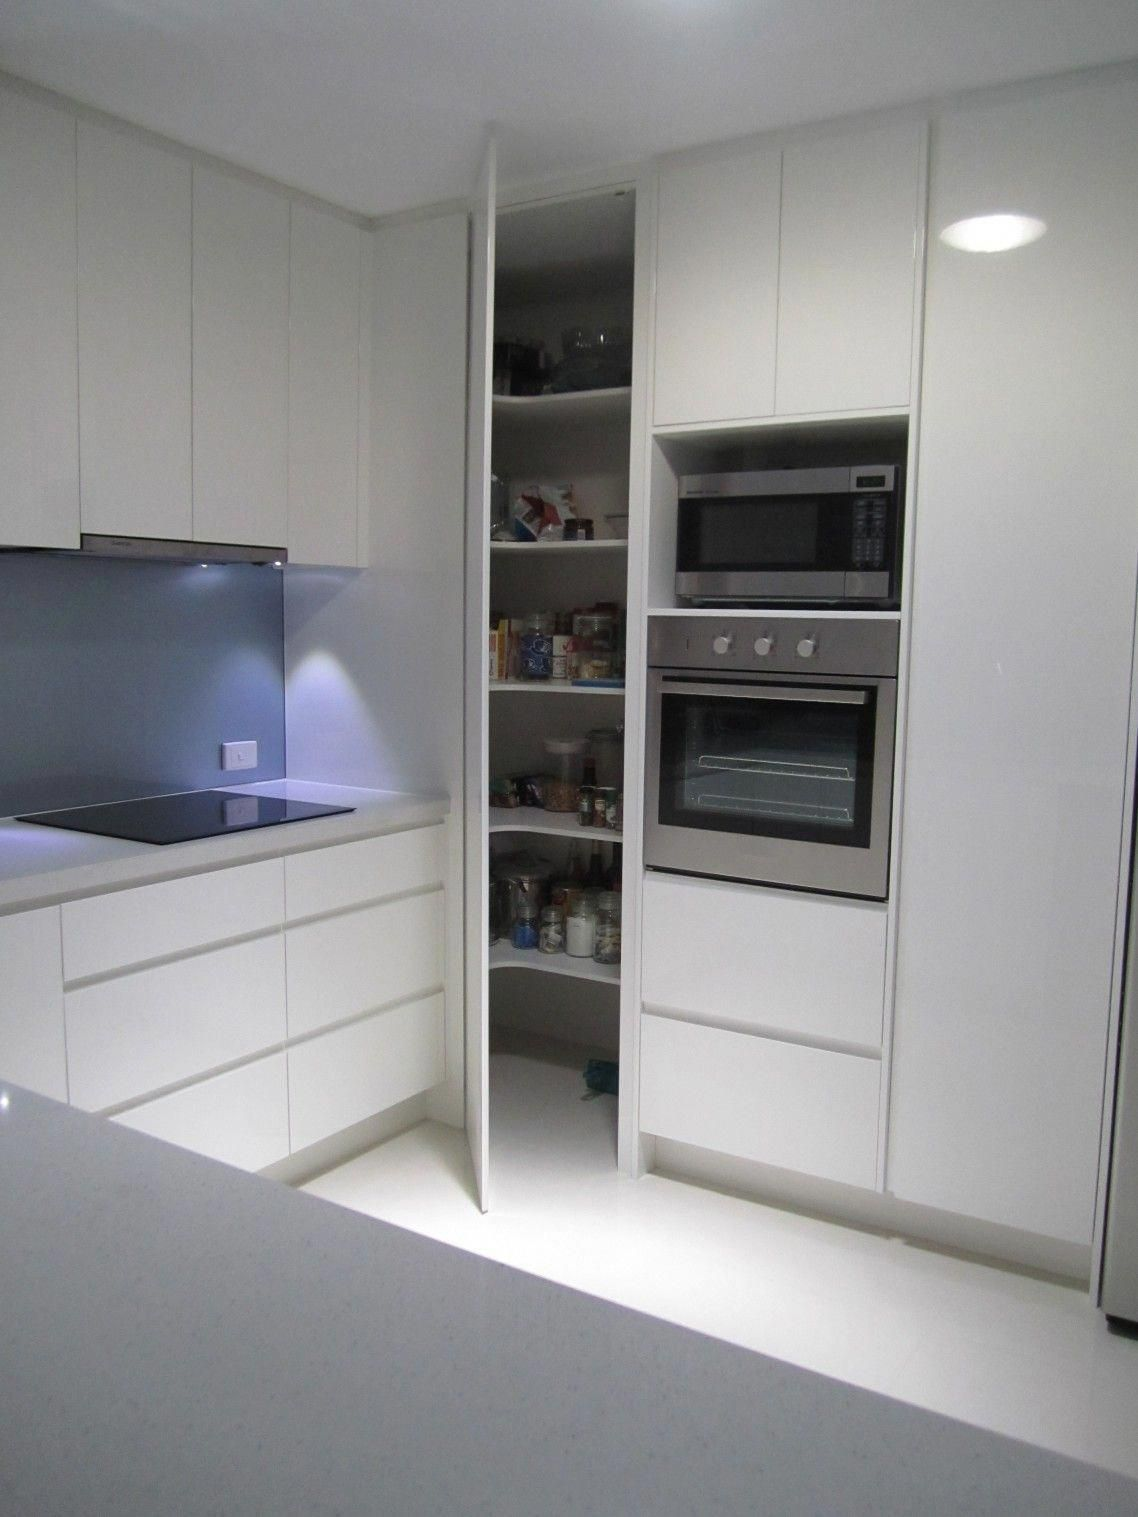 5 Reasons Why Modular Kitchen Designs Are The Latest Trend In Home Decor Home Dekor 5 In 2020 Modular Kitchen Cabinets Modern Kitchen Cabinet Design Kitchen Layout